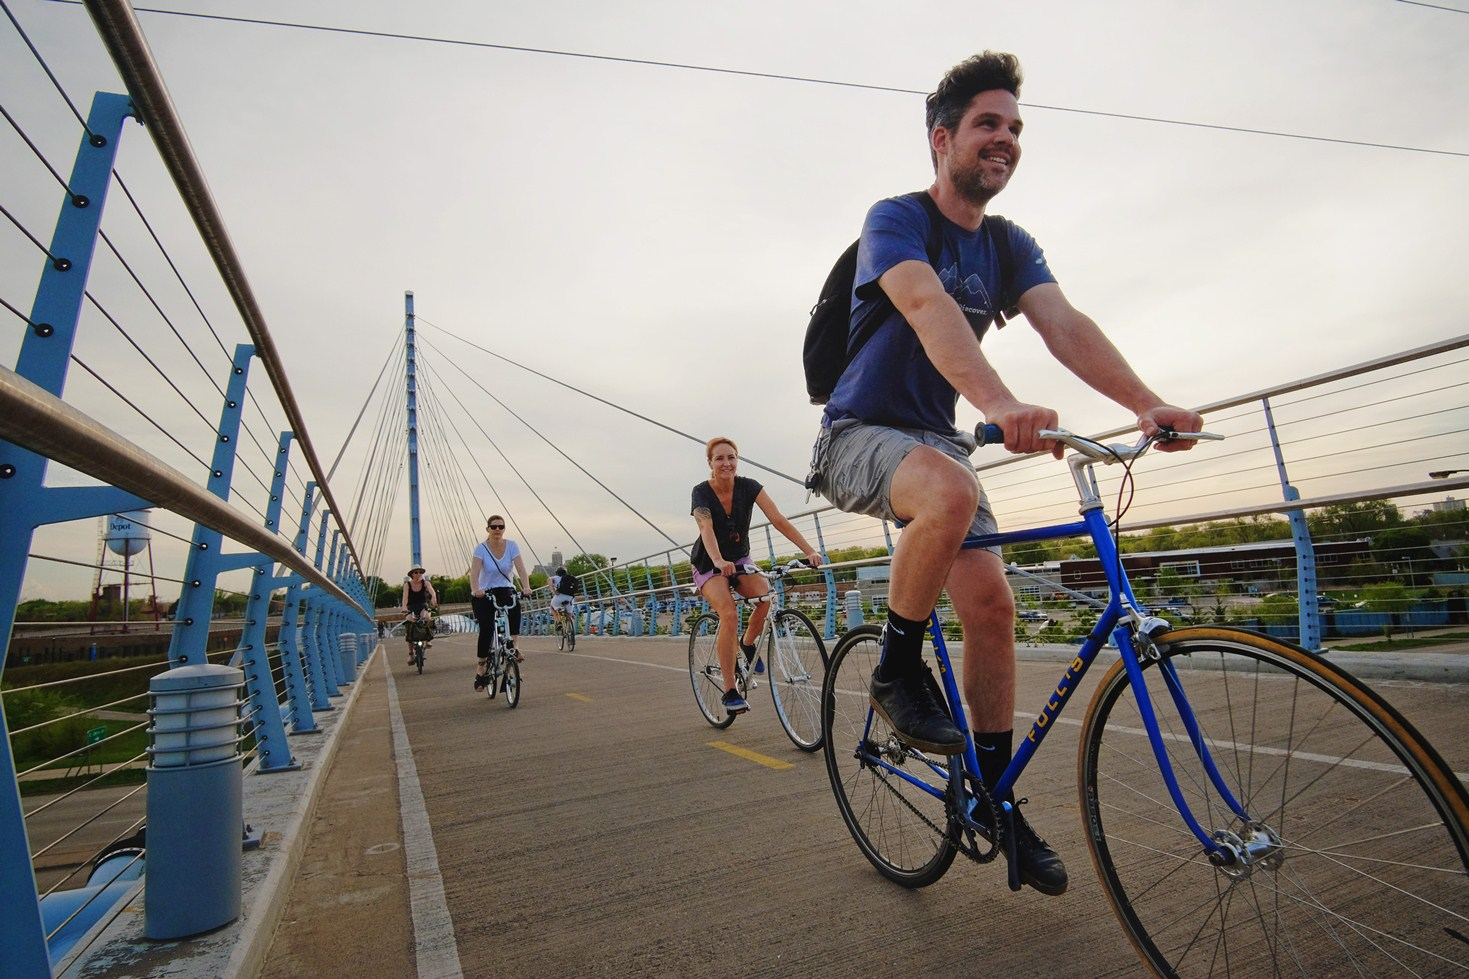 Sabo Bridge of Midtown Greenway. Photo by Kyle Ramey of Bikabout.com.